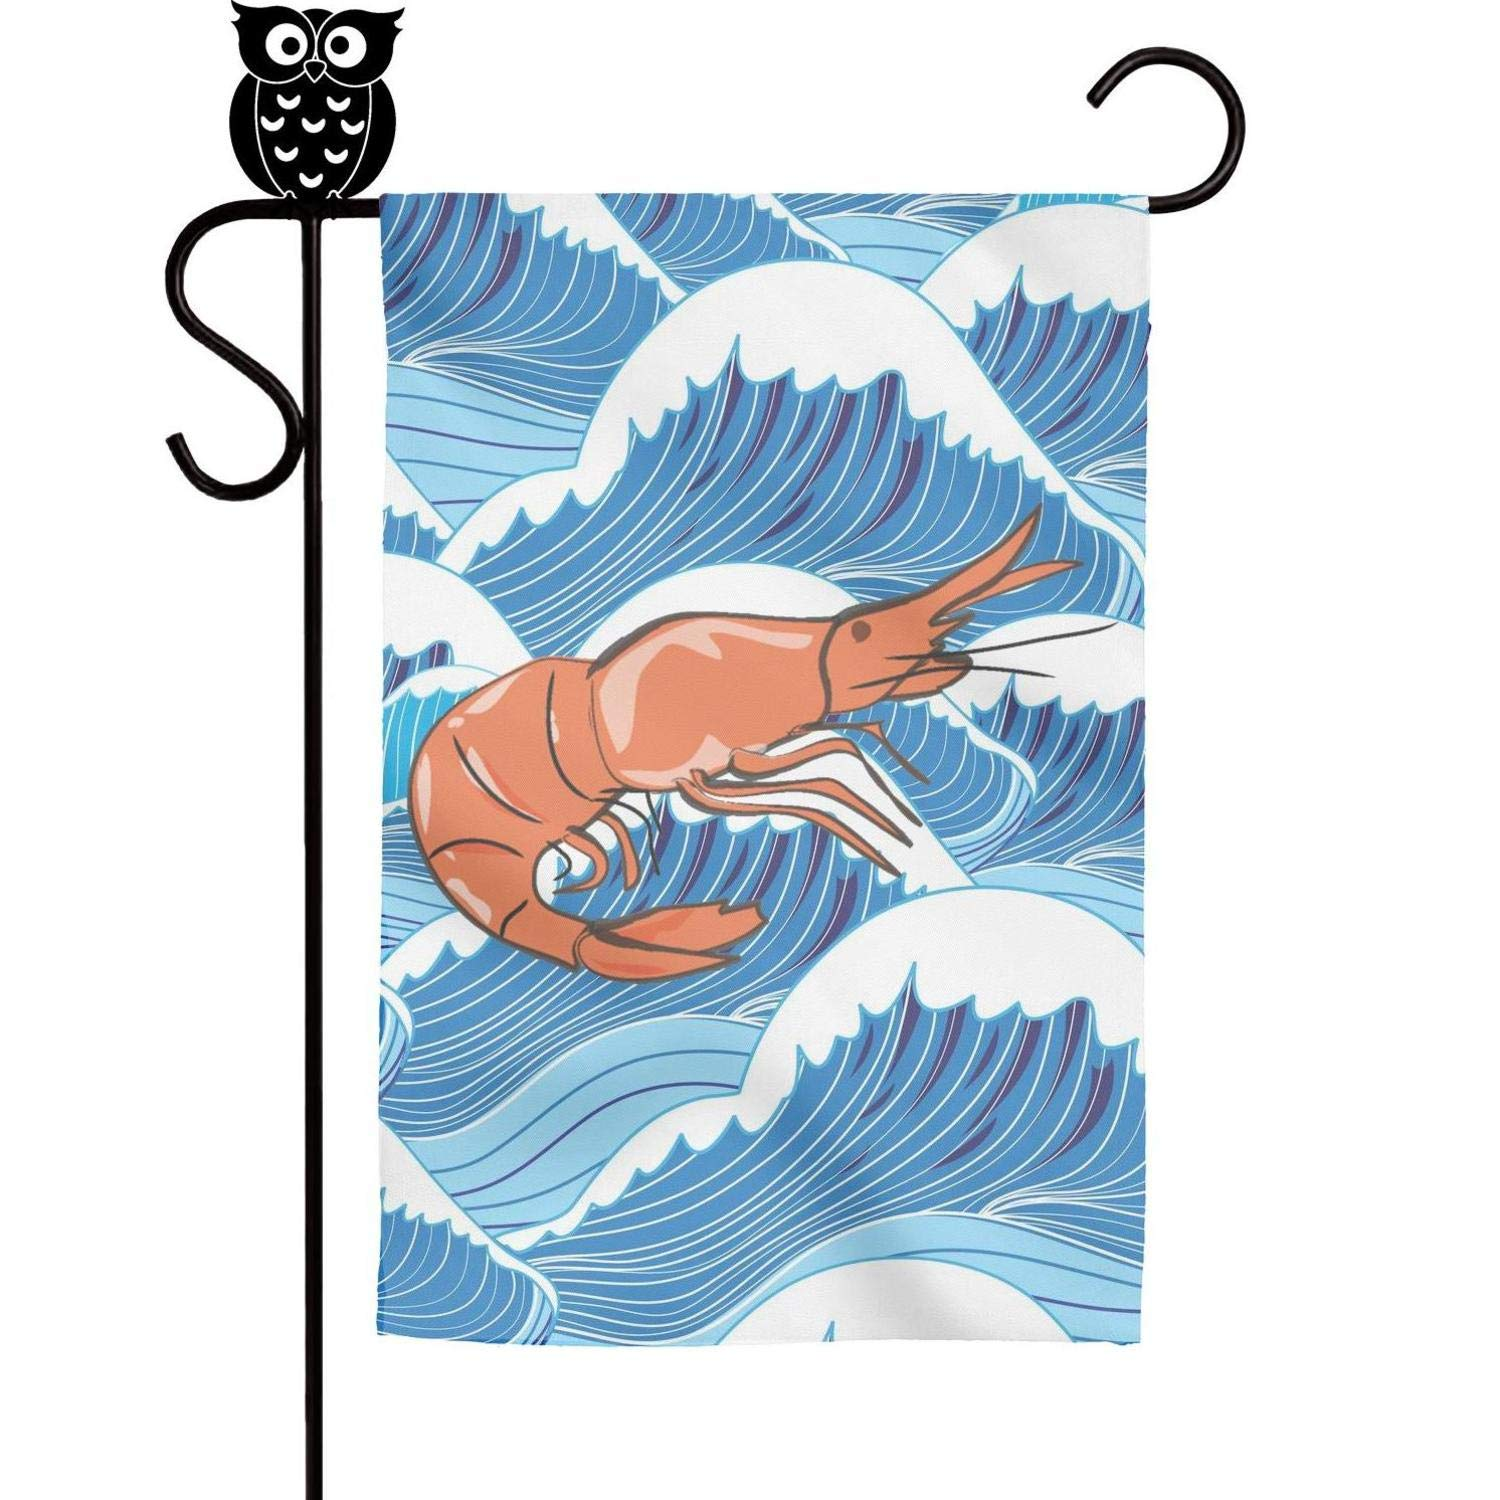 1500x1500 Bodu Cute Shrimp Drawing Art Garden Flag Yard Home